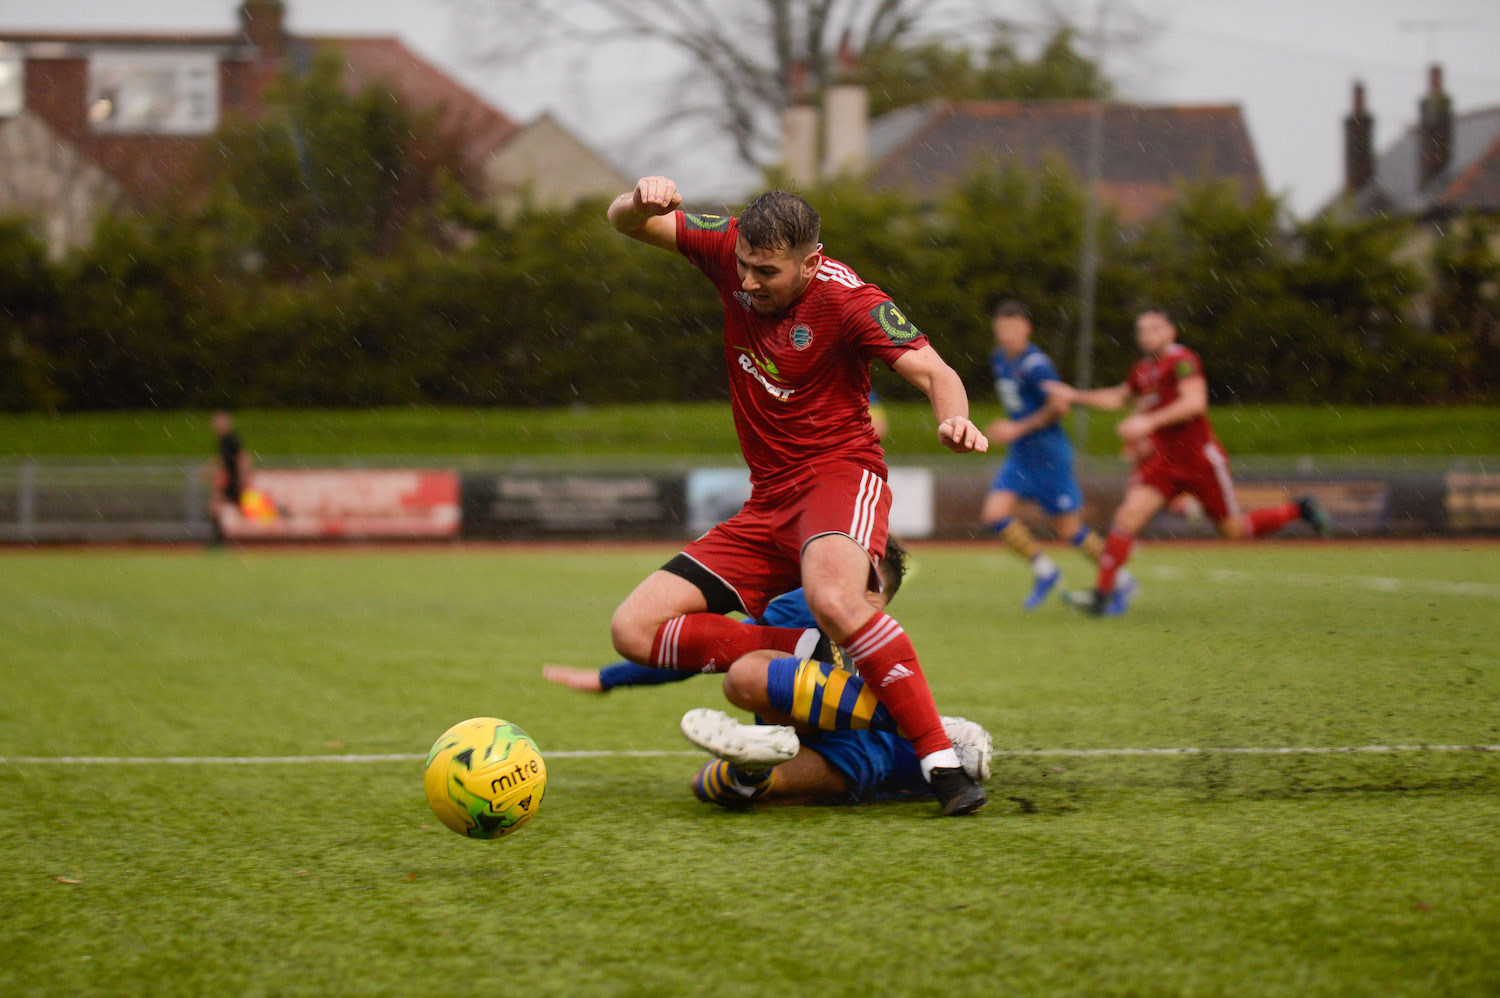 Read the full article - HIGHLIGHTS | 19/20: AFC Sudbury [H] – FA Trophy